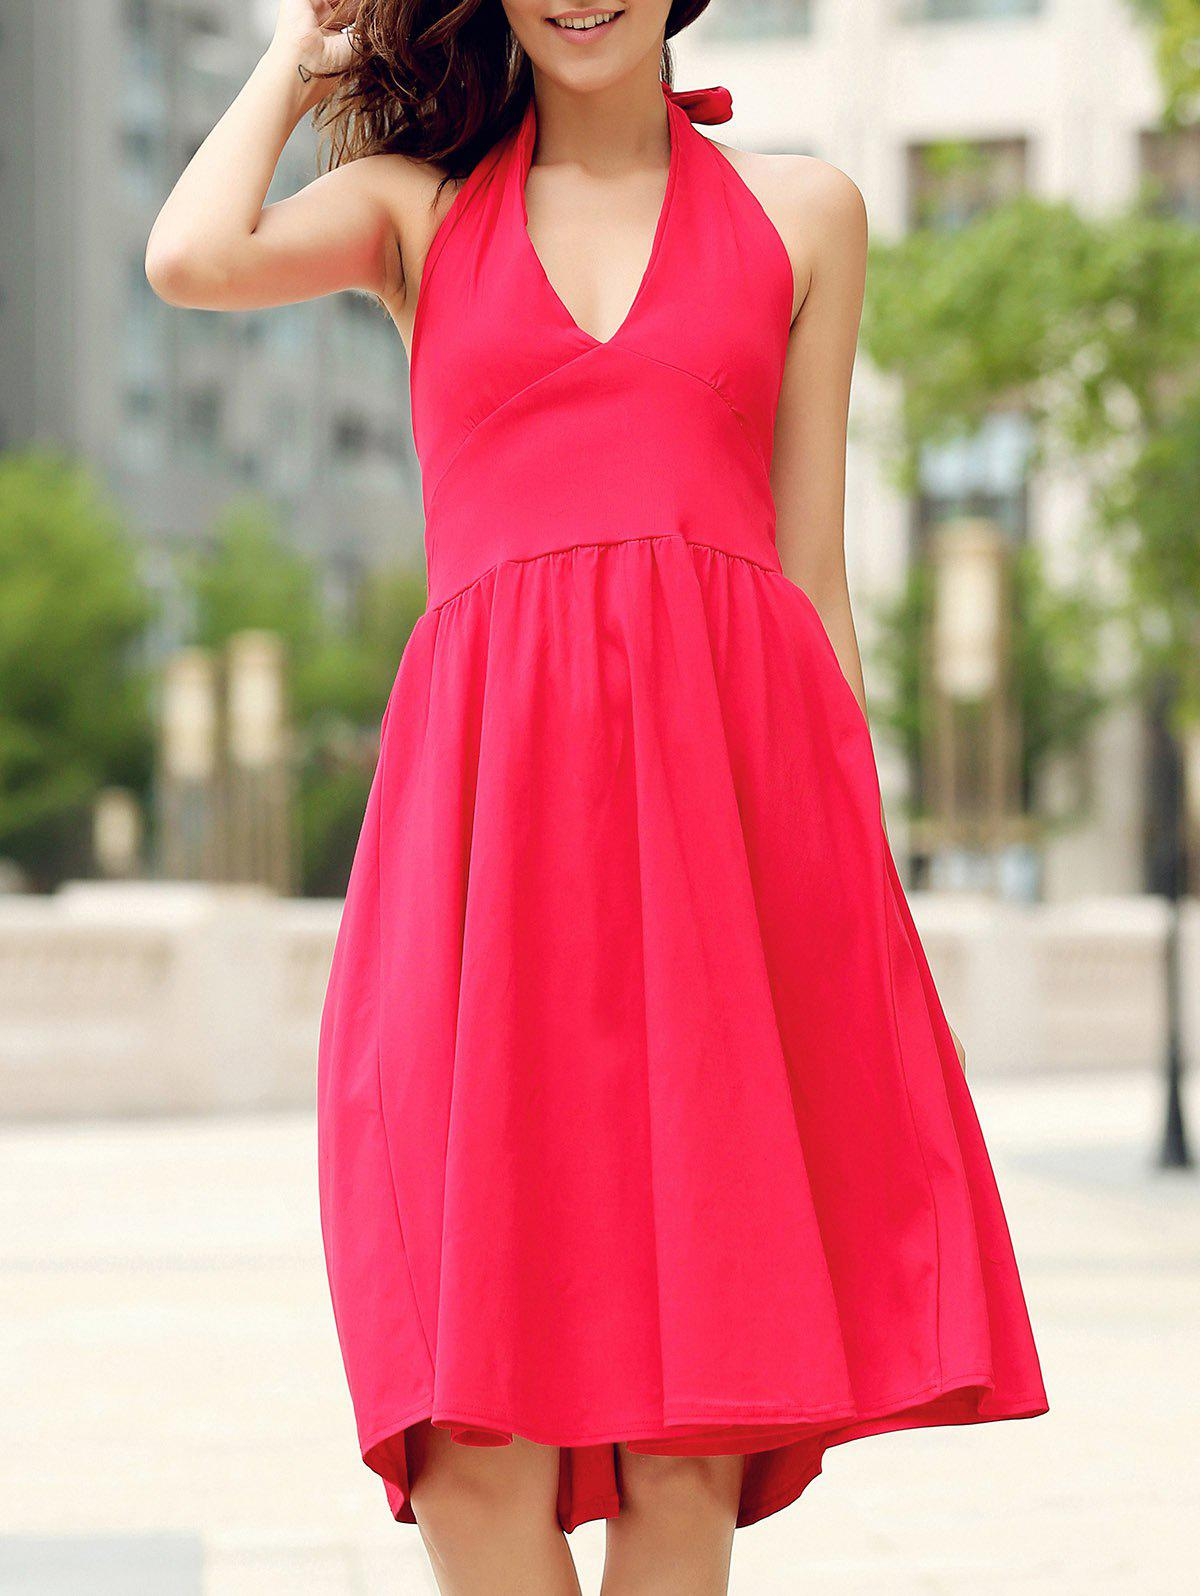 Halter Vintage Pure Color Dress Backless Flare pour les femmes - Rouge S